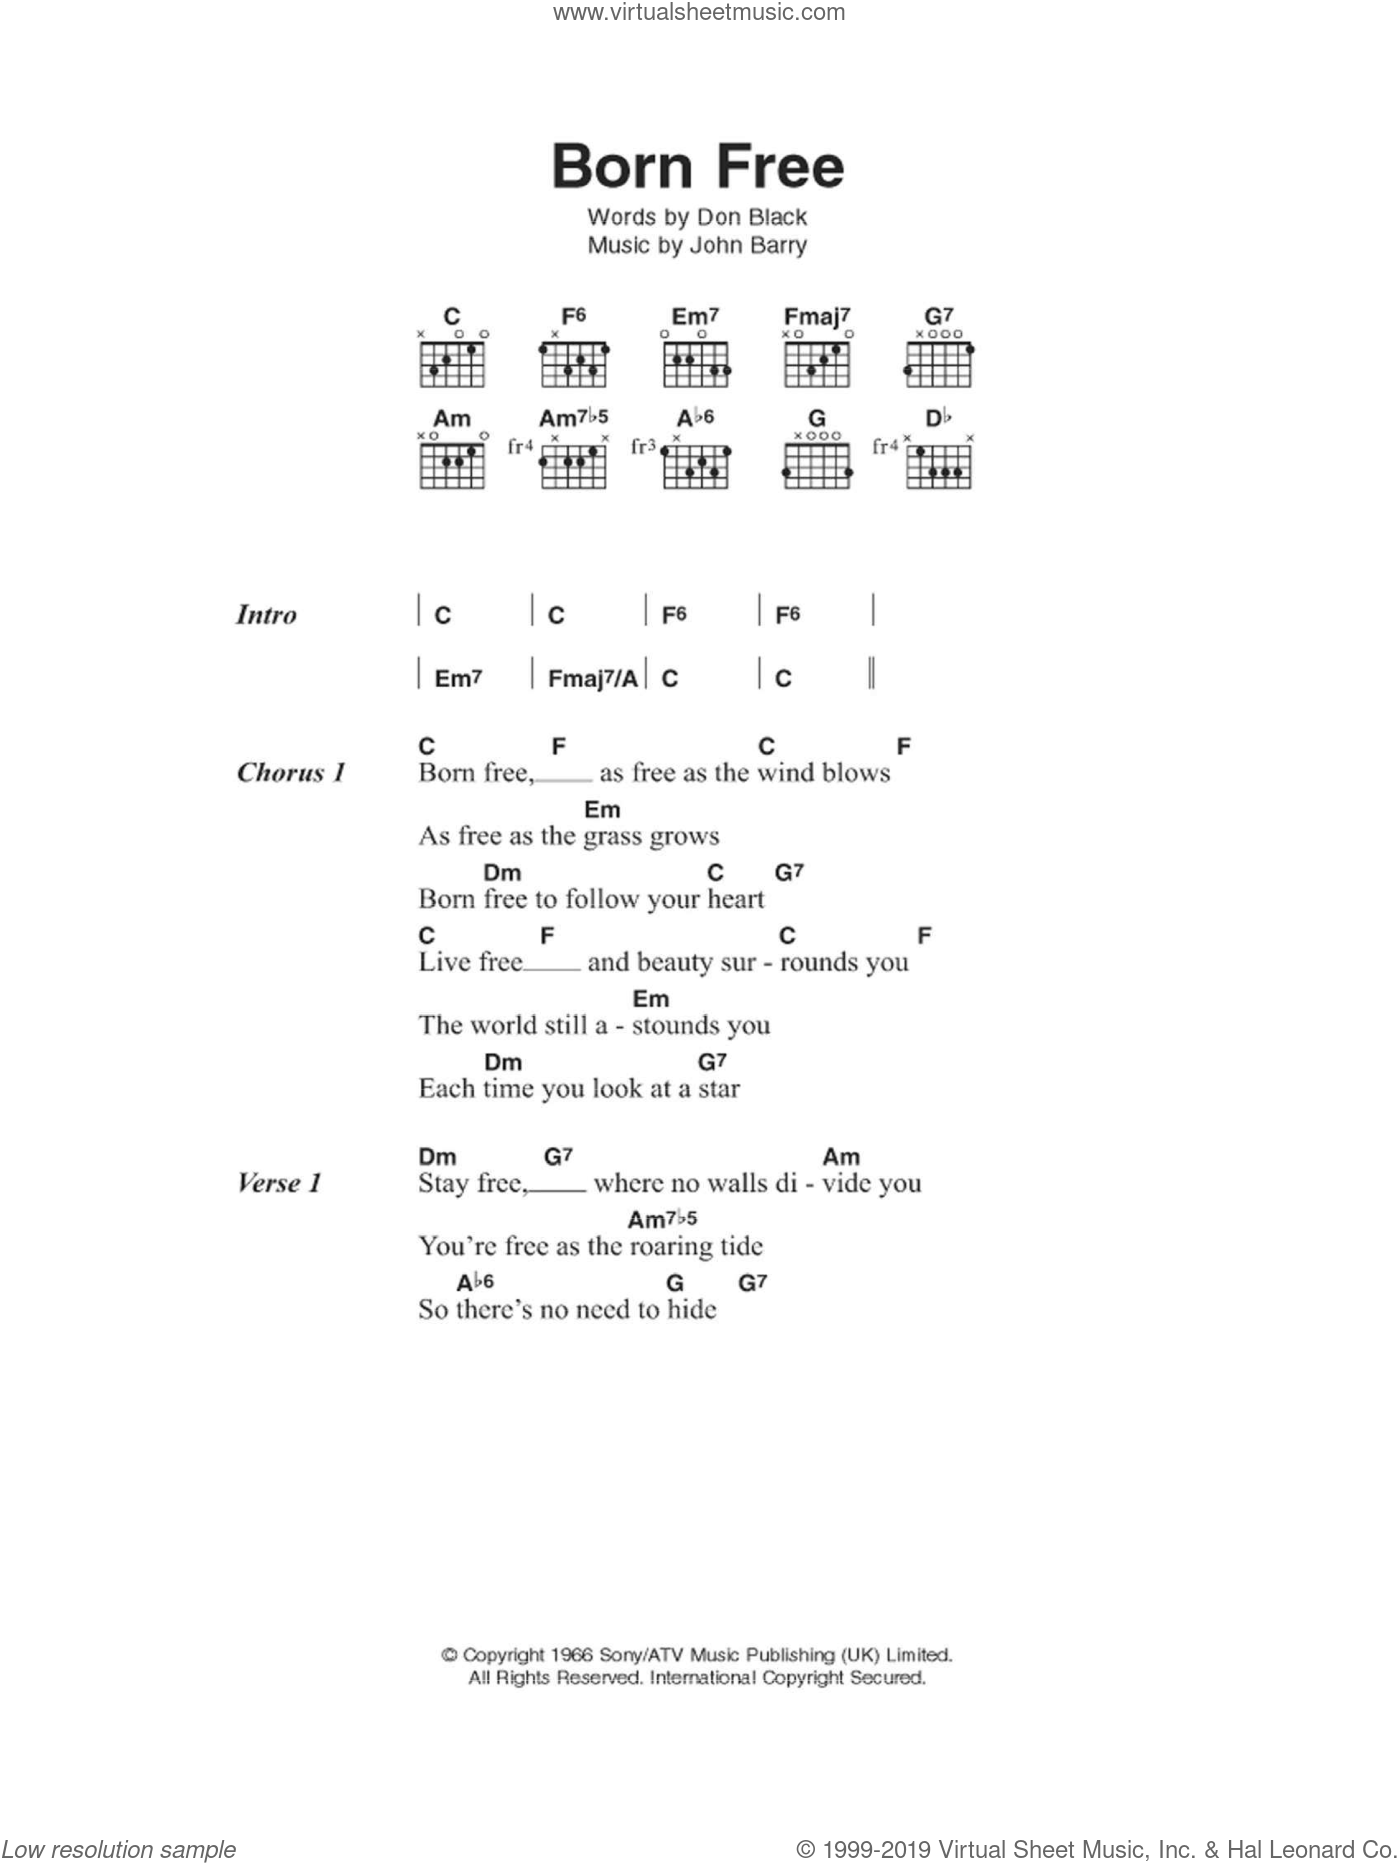 Born Free sheet music for guitar (chords) by Matt Monro, Don Black and John Barry, intermediate guitar (chords). Score Image Preview.